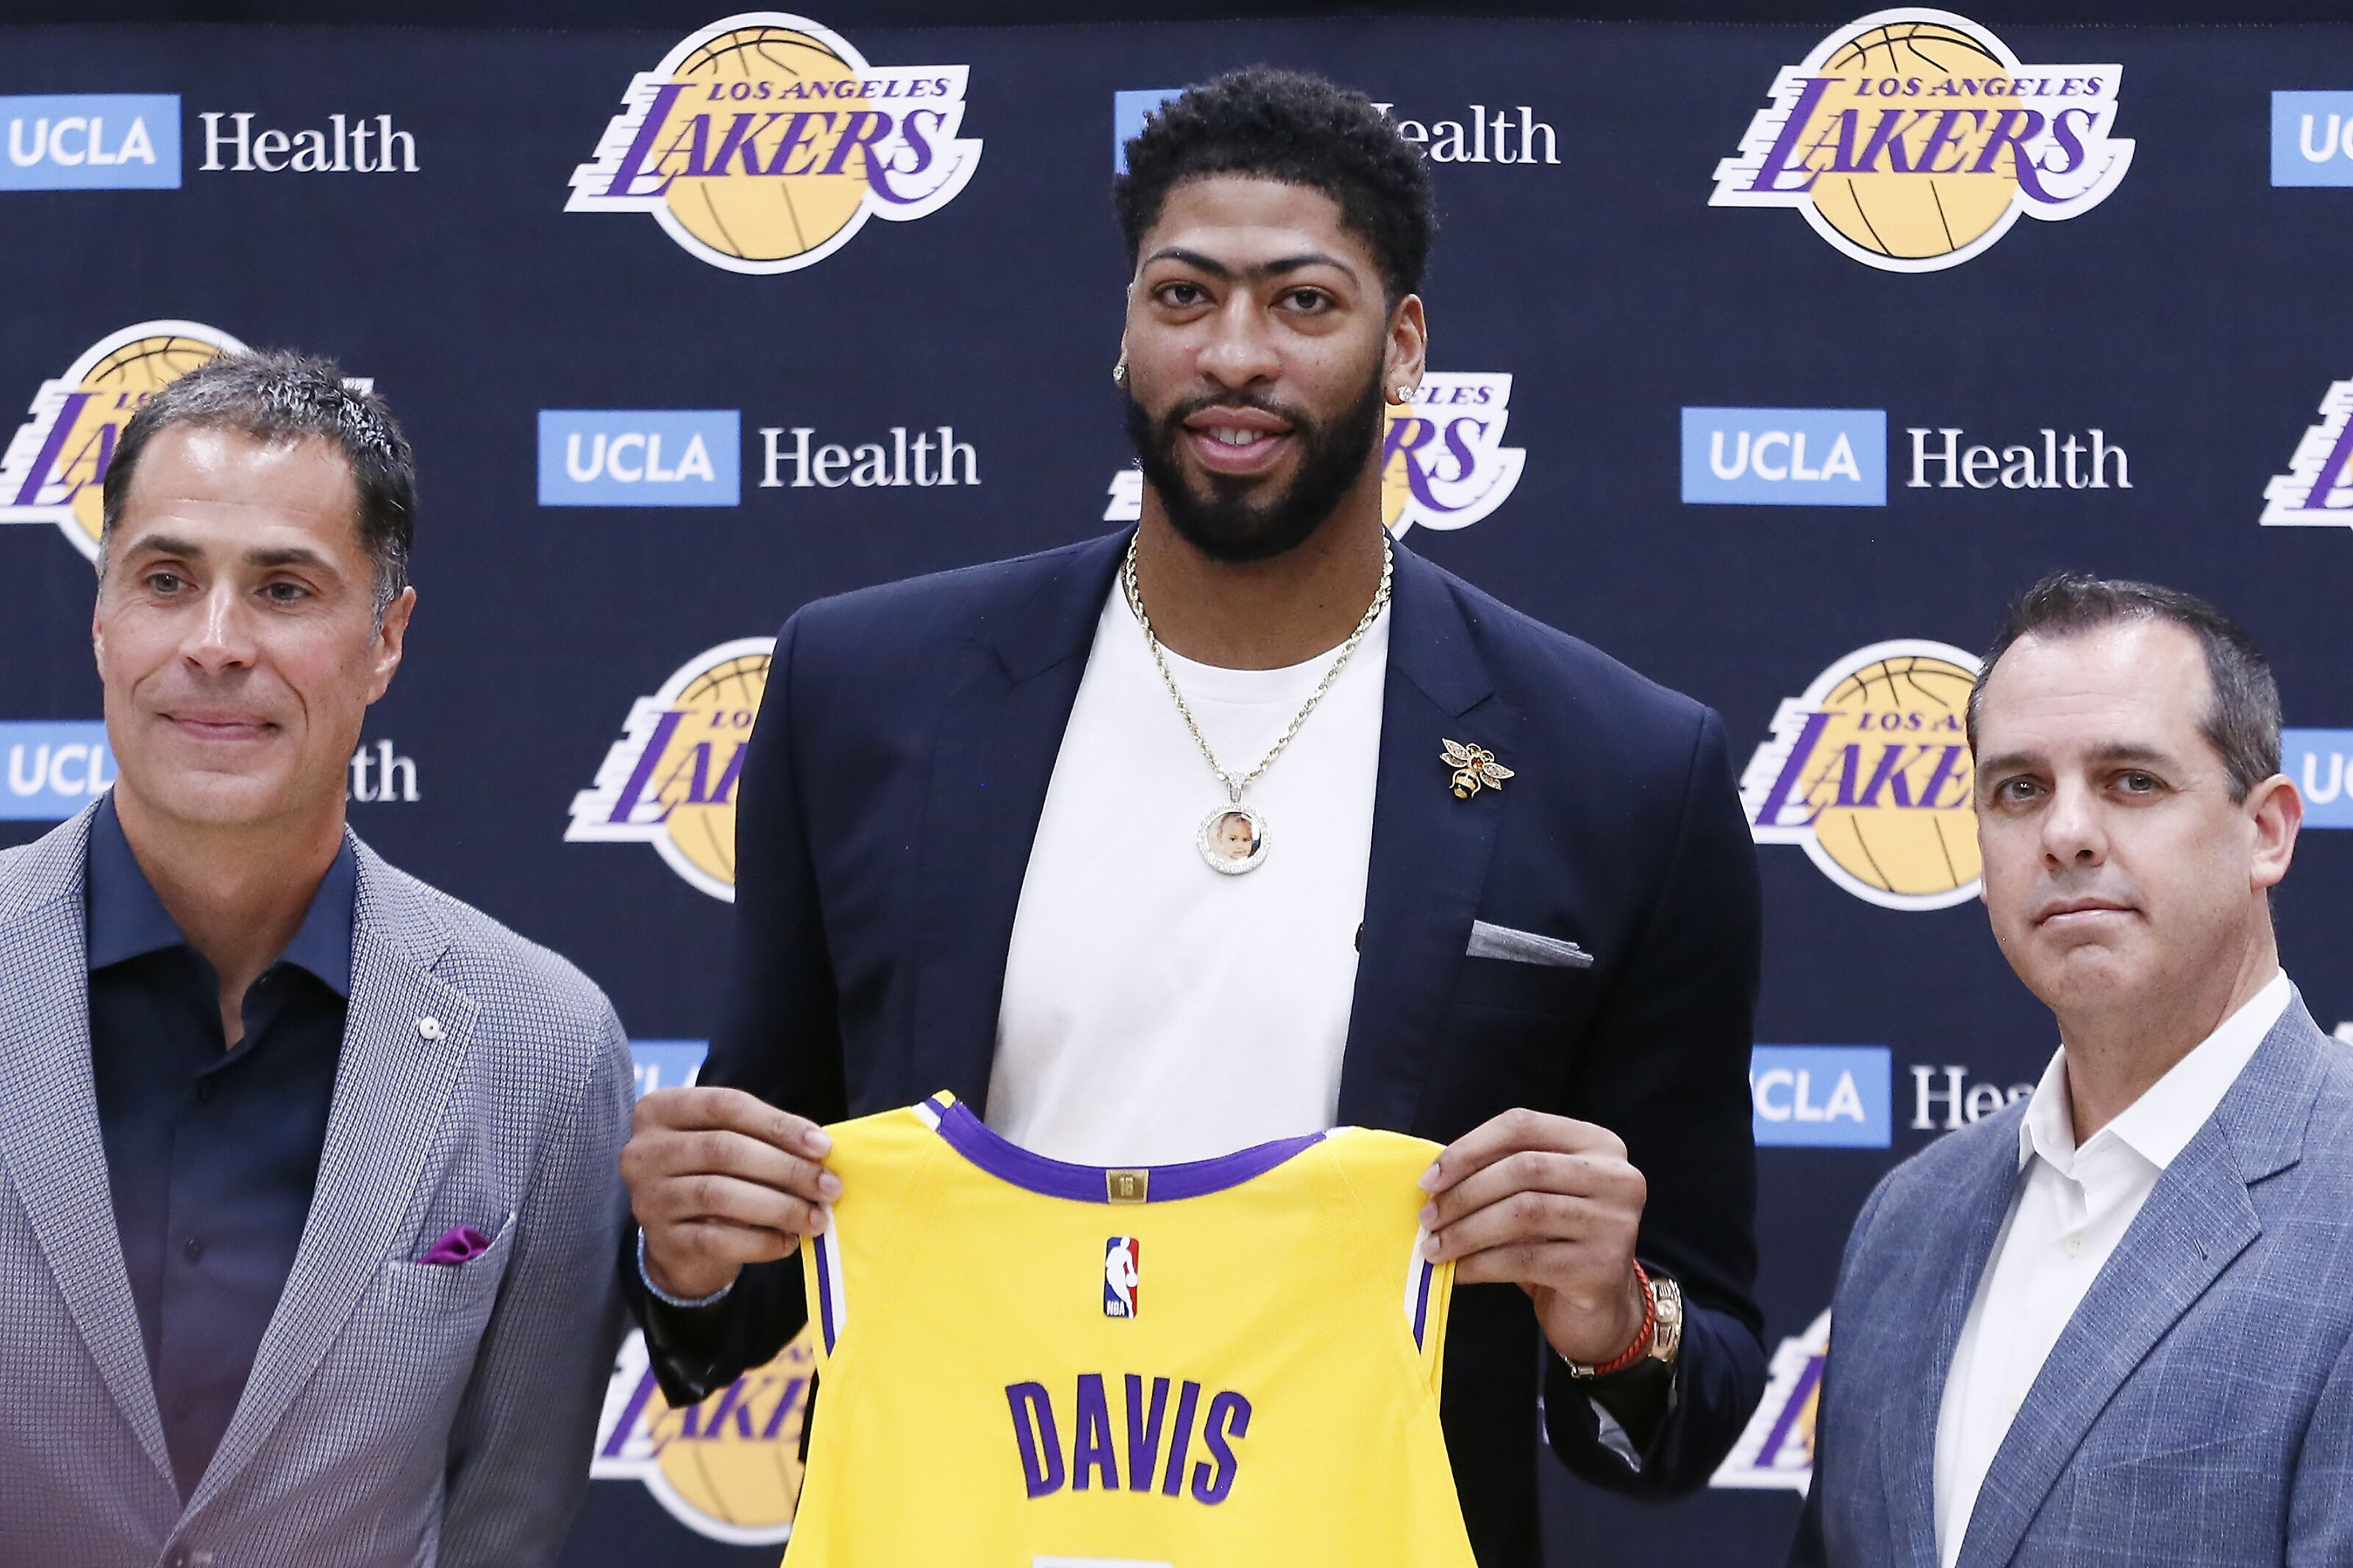 Los Angeles Lakers: Anthony Davis will become best power forward in franchise history